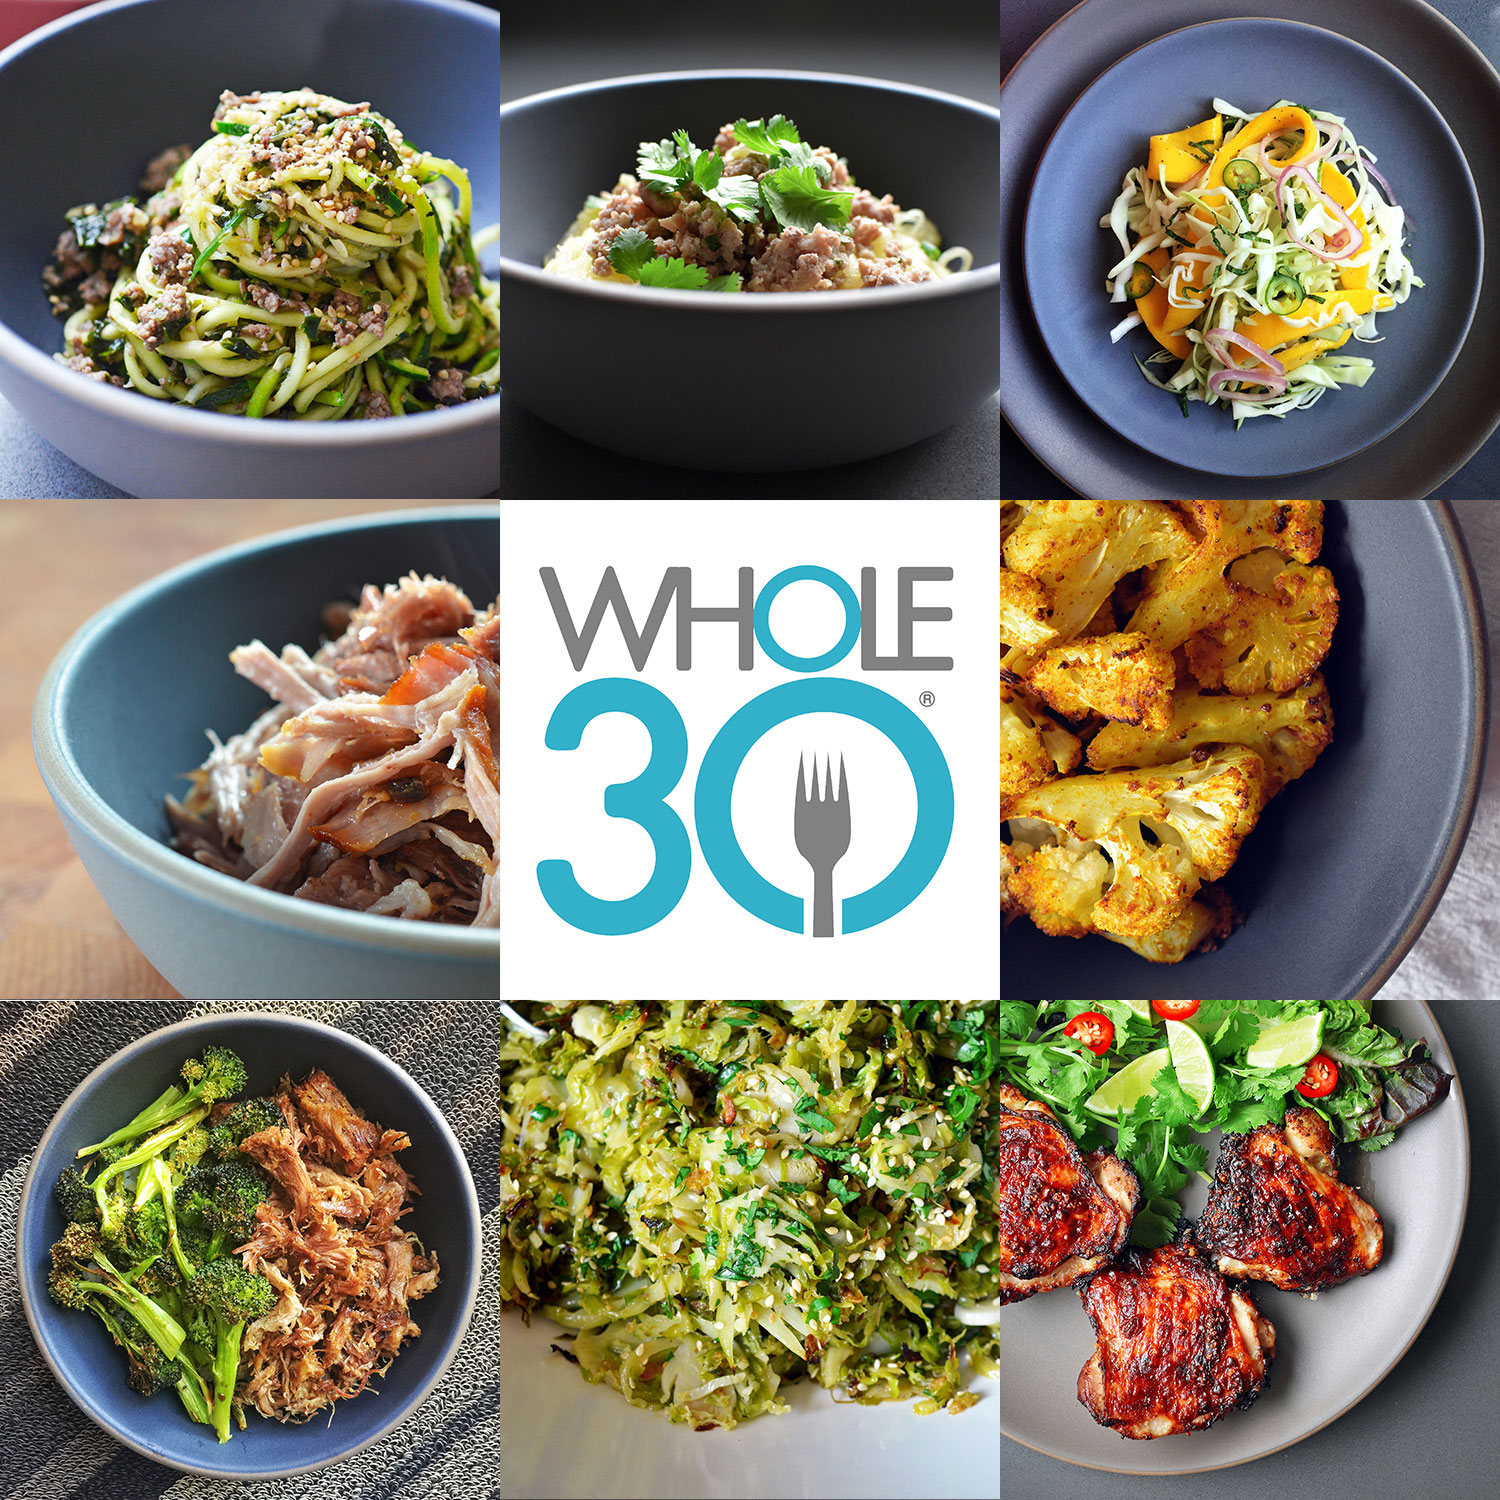 Whole30 - How I prepare for Whole30 Diet by popular Seattle lifestyle blogger Gracefully Glam